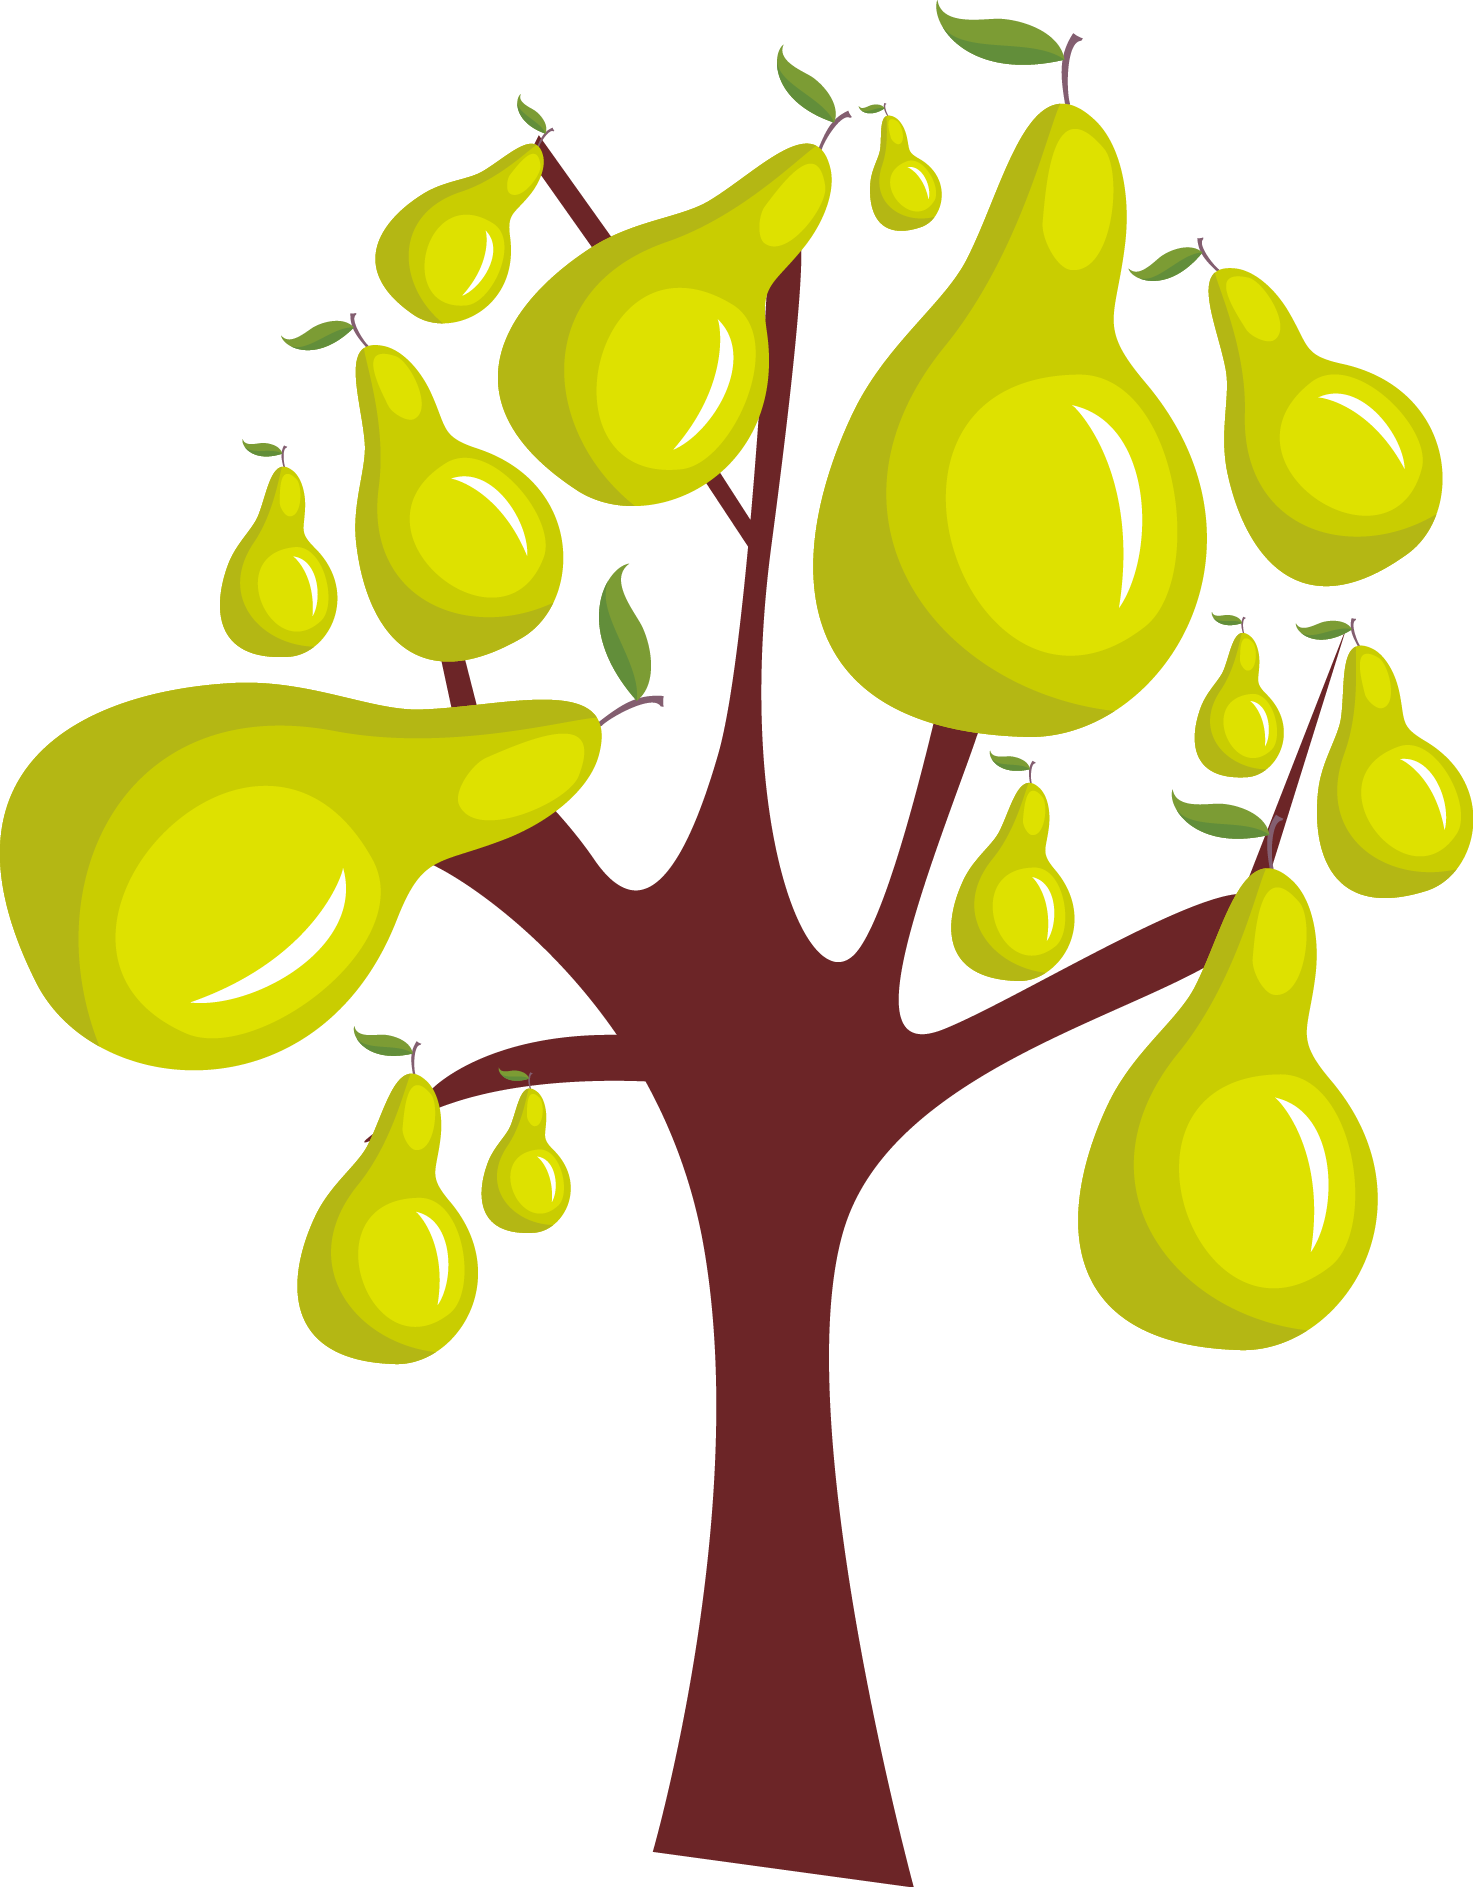 Mango Tree Drawing | Free download on ClipArtMag